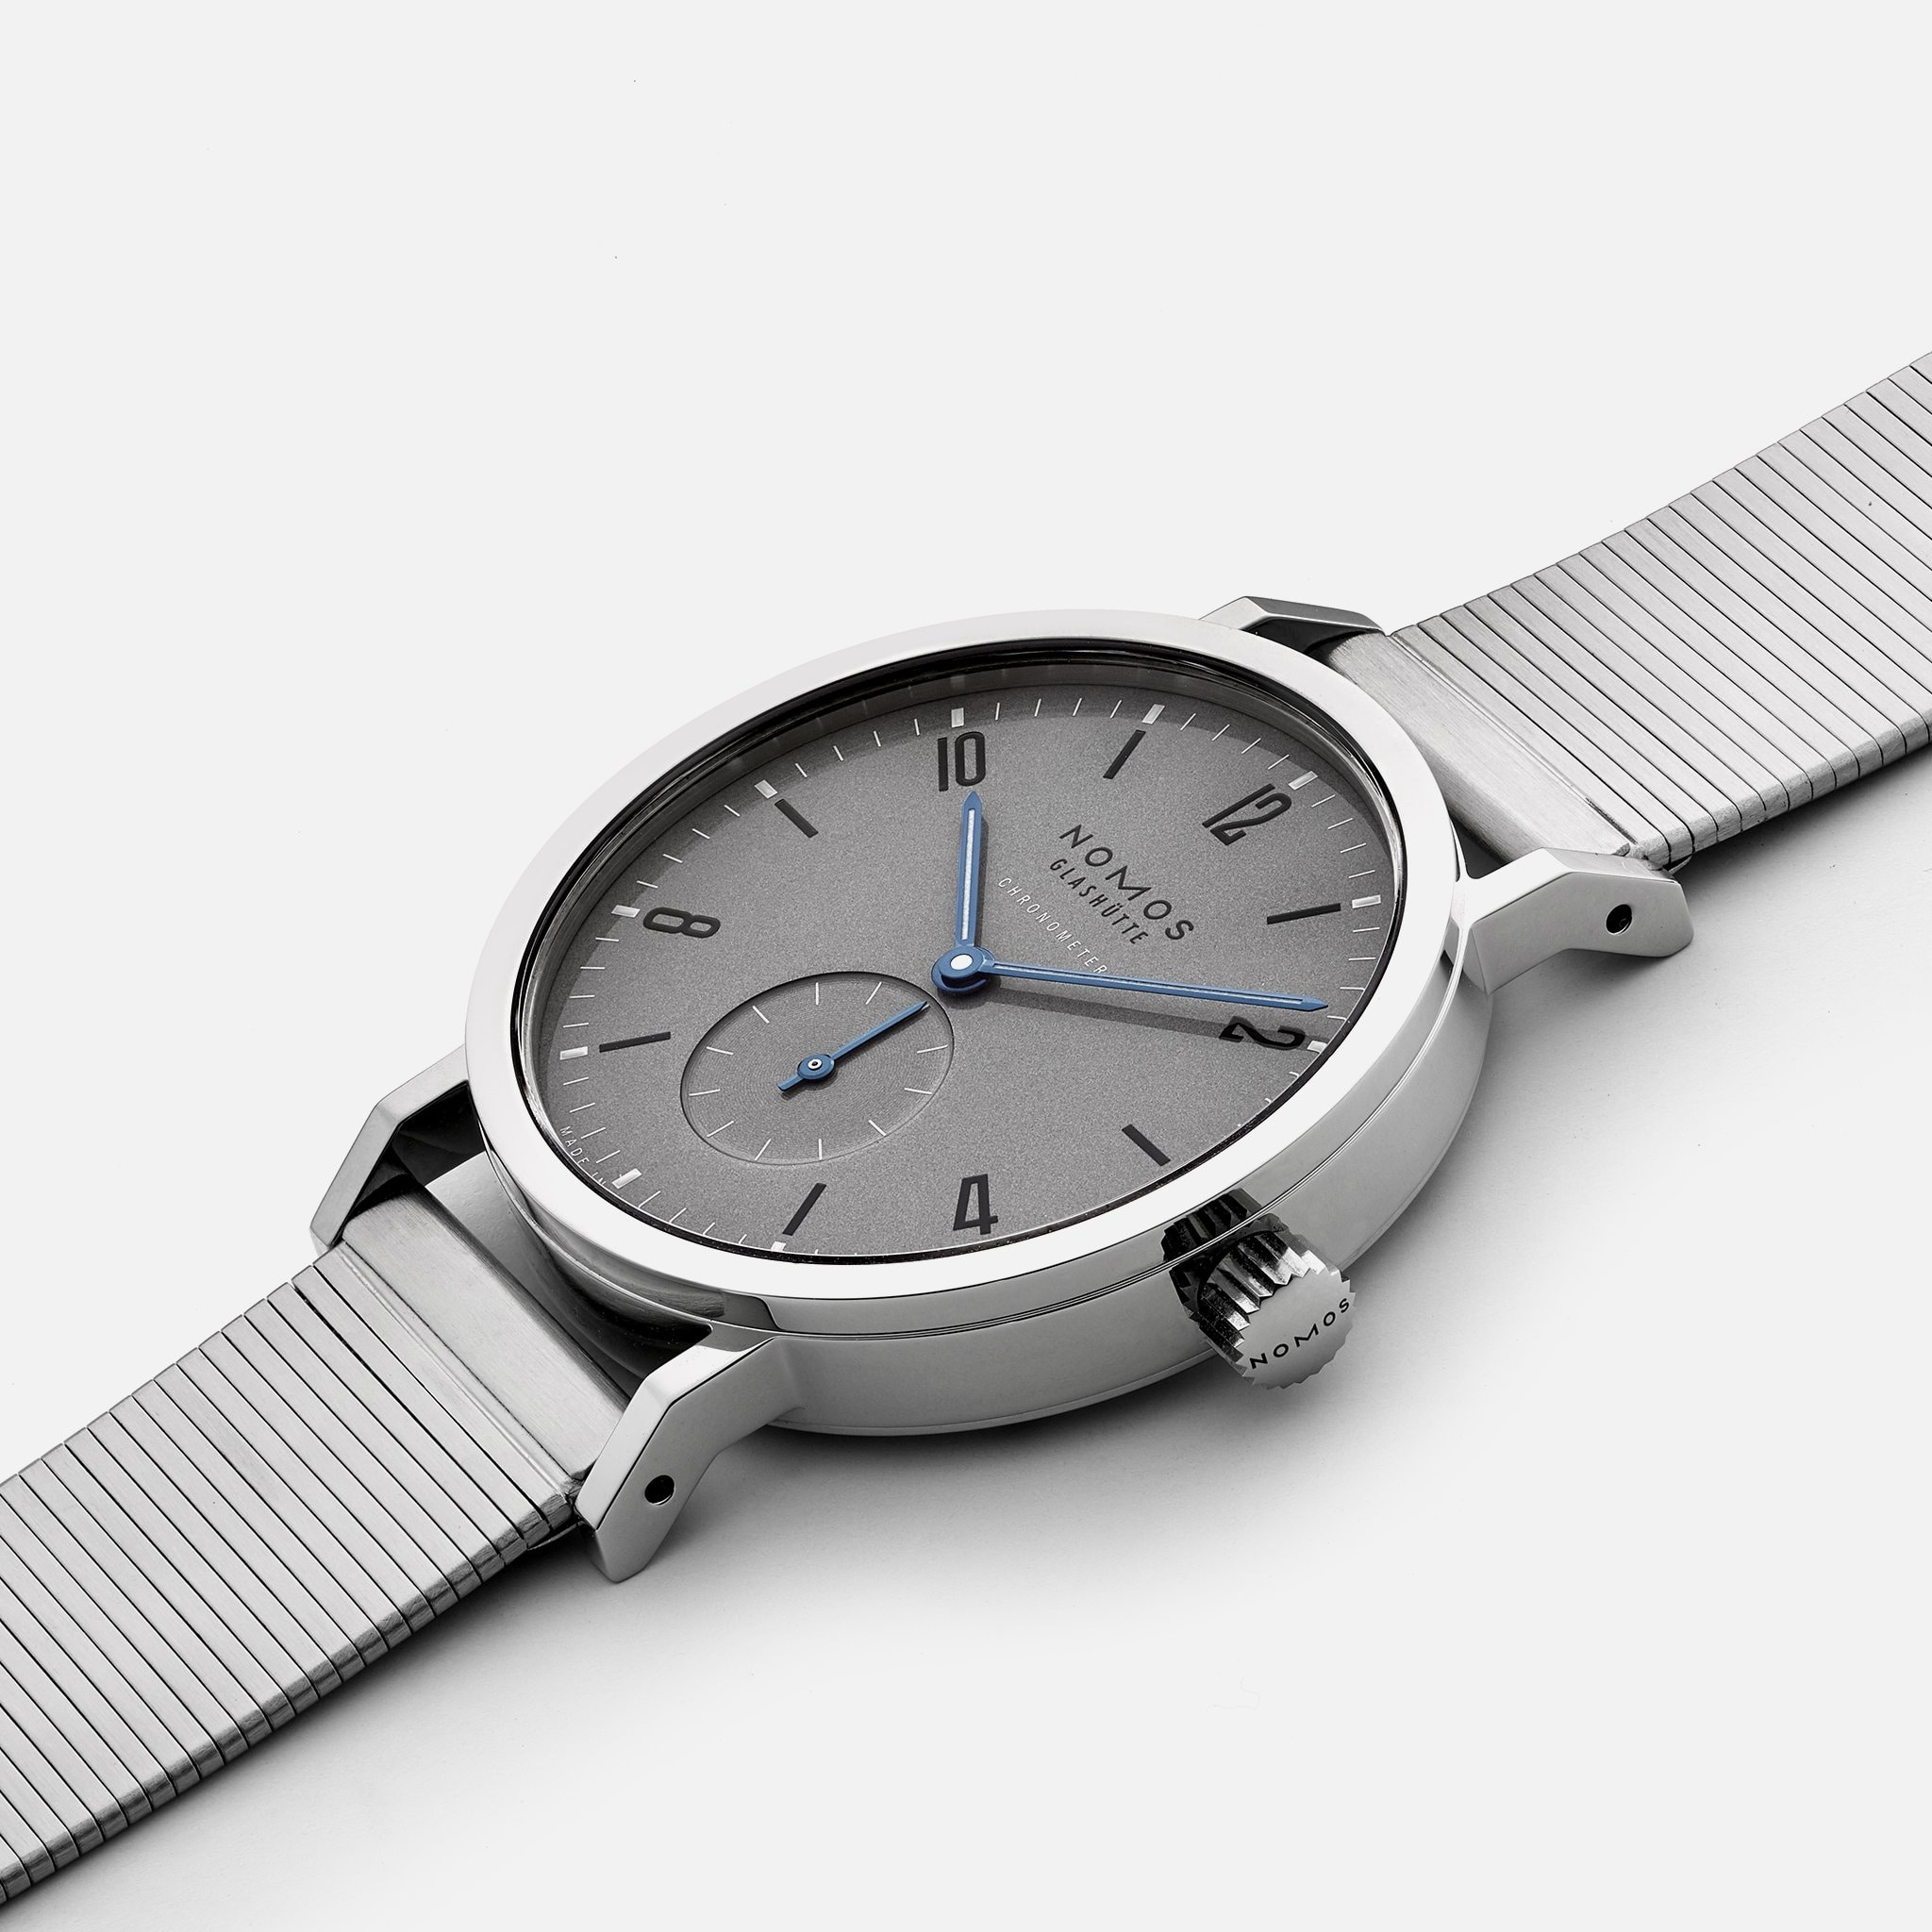 https://hodinkee-shopify.imgix.net/s/files/1/0146/0732/products/LE-Nomos-3Q_2048x2048.jpg?v=1575990281&auto=format&fit=max&q=88&ixlib=react-8.4.0&w=530